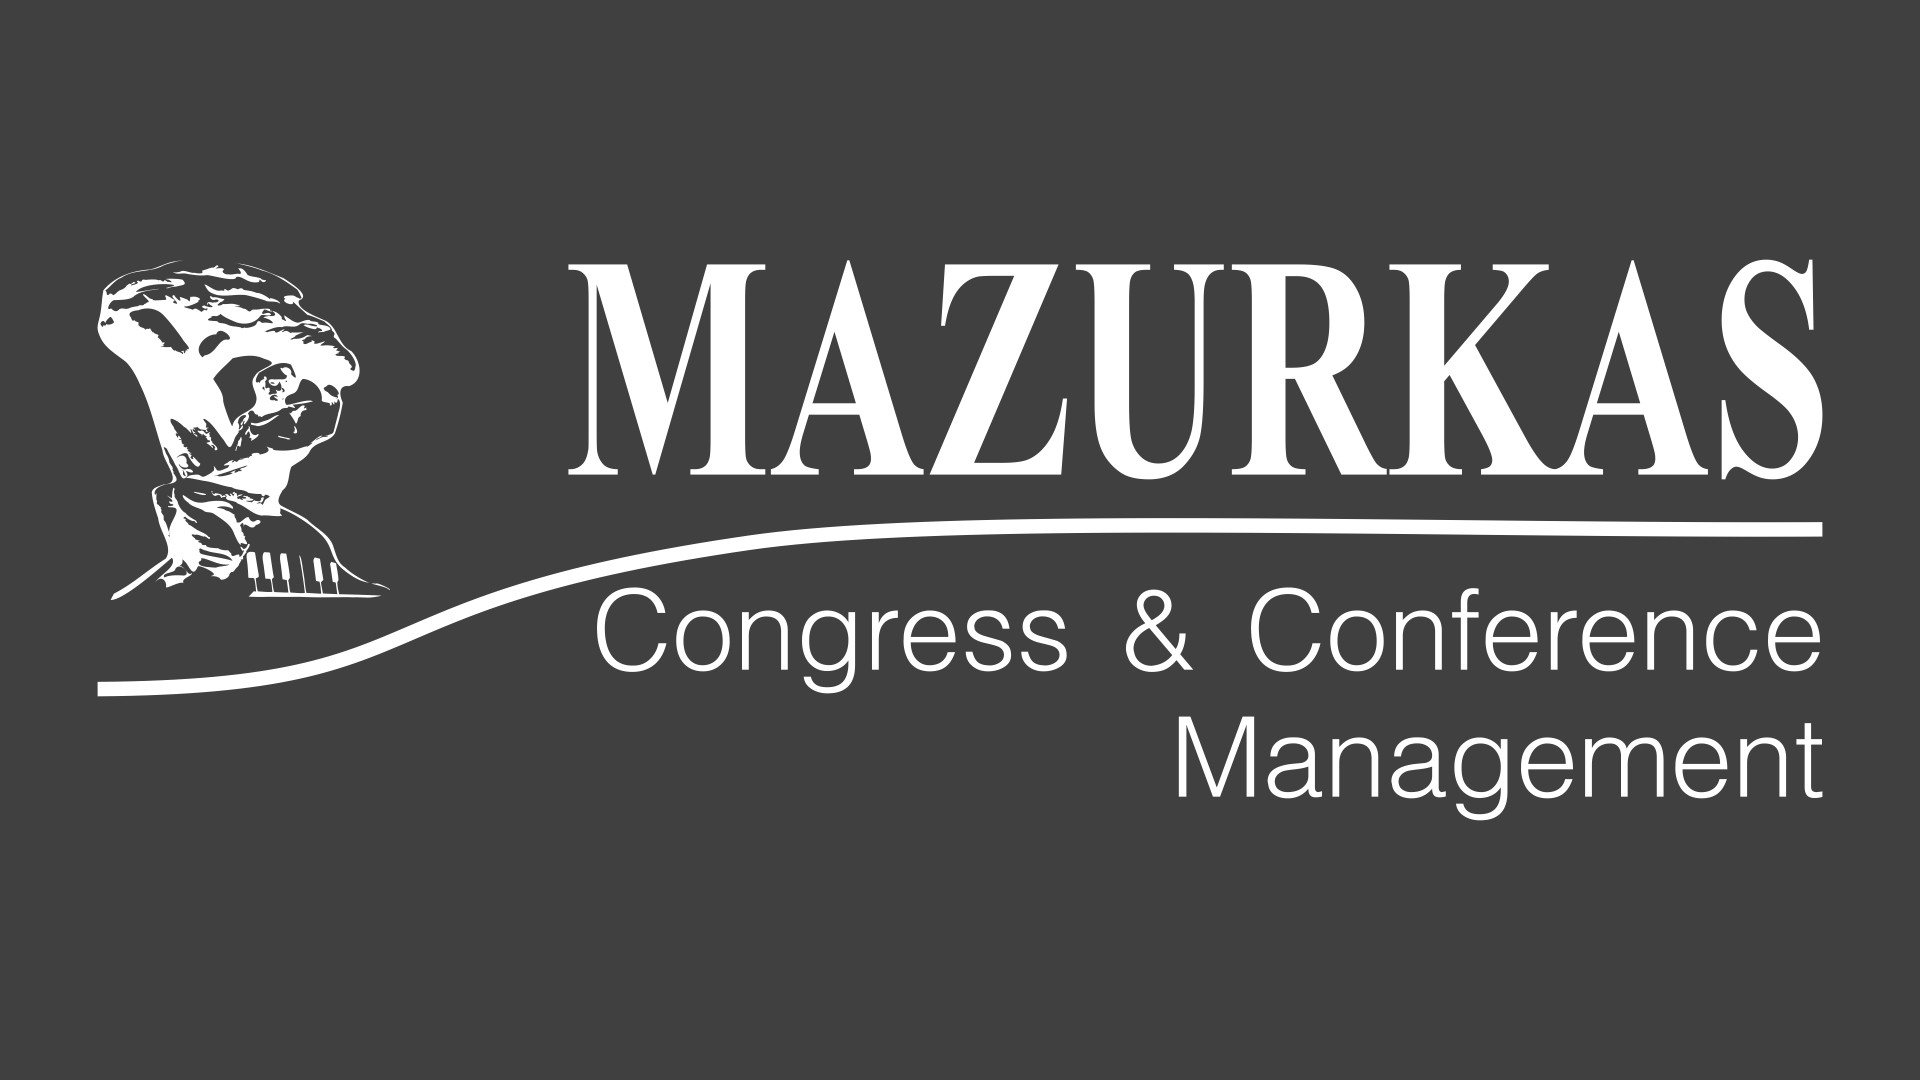 Mazurkas Congress Conference Management logo k 1920x1080px